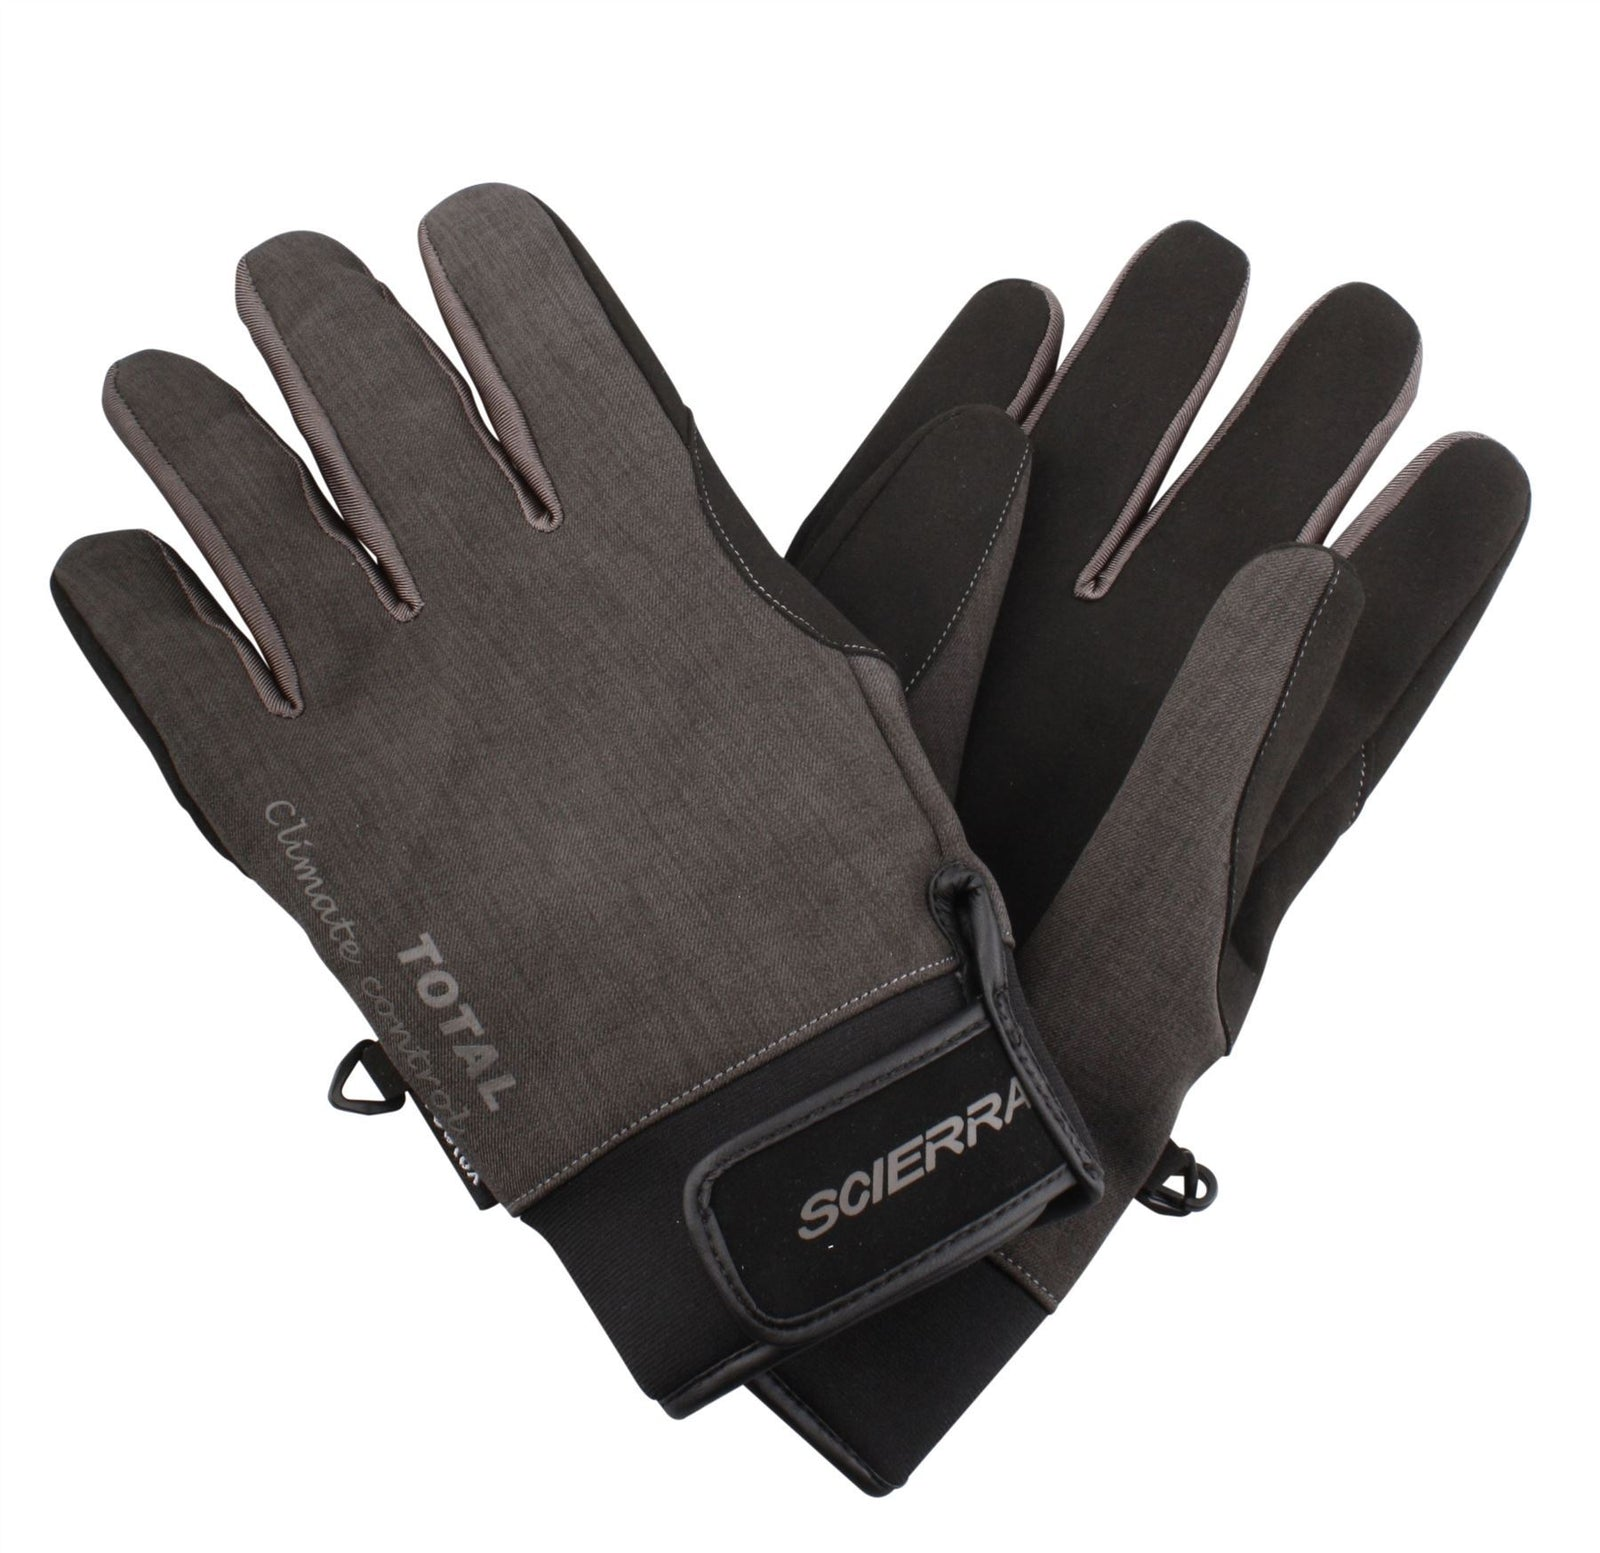 Scierra Sensi-Dry Glove - reid outdoors